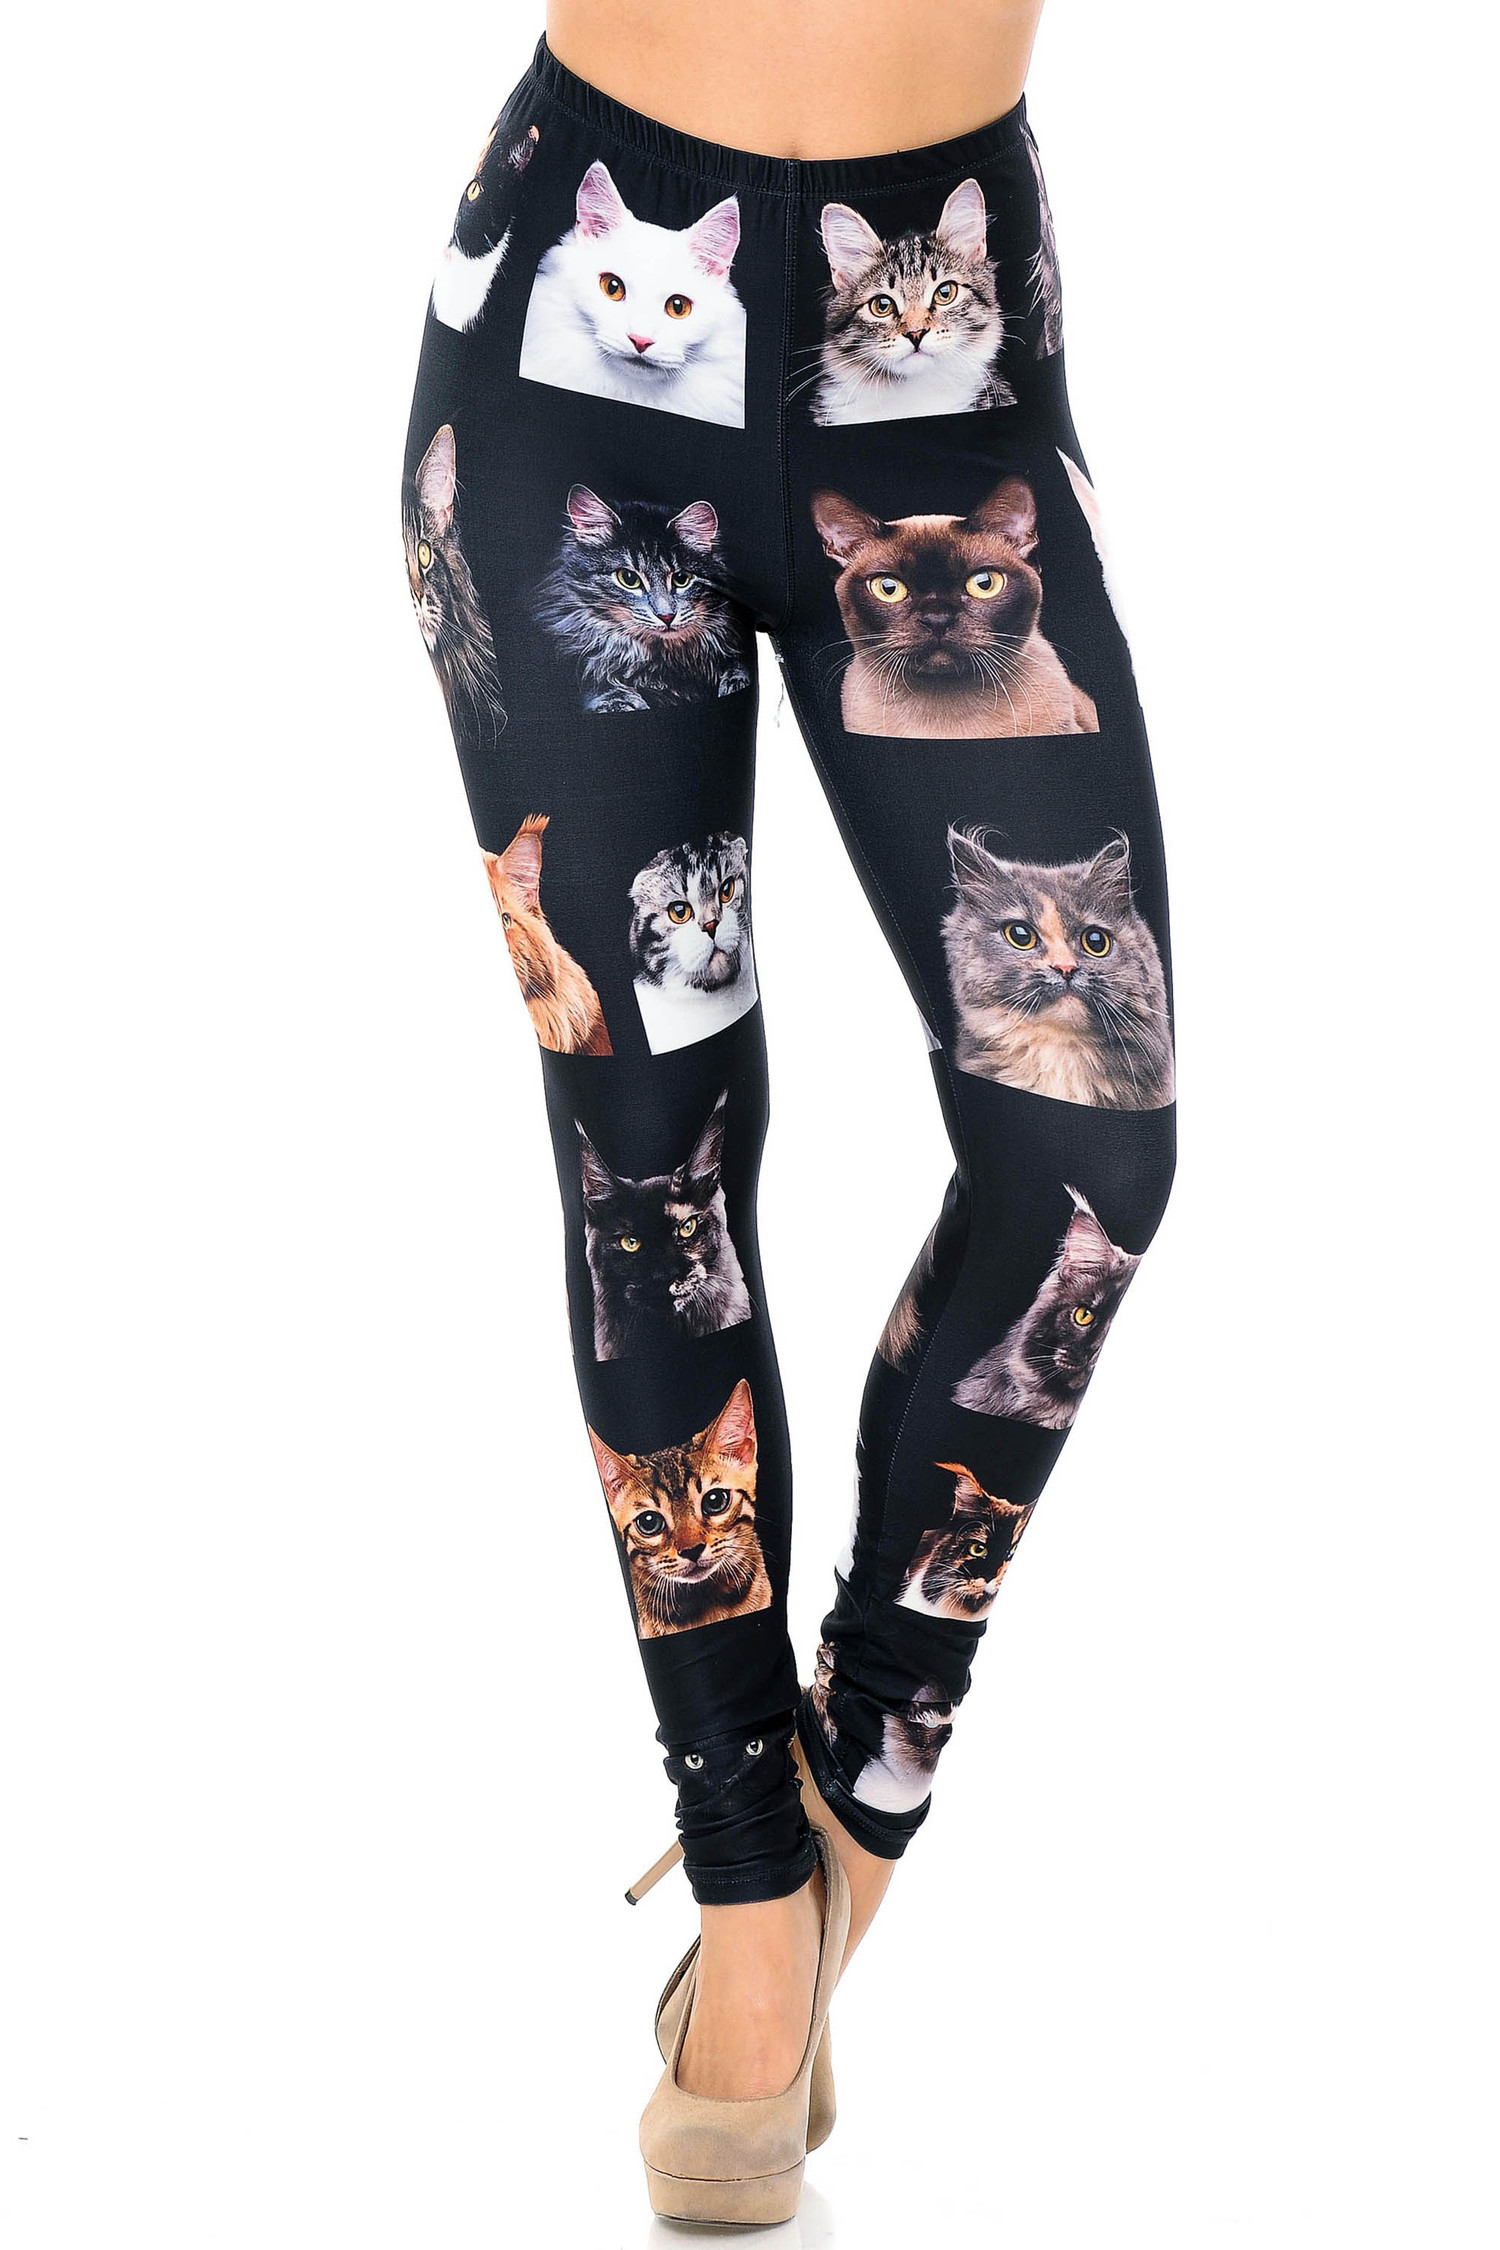 Creamy Soft Cute Kitty Cat Faces Leggings - USA Fashion™